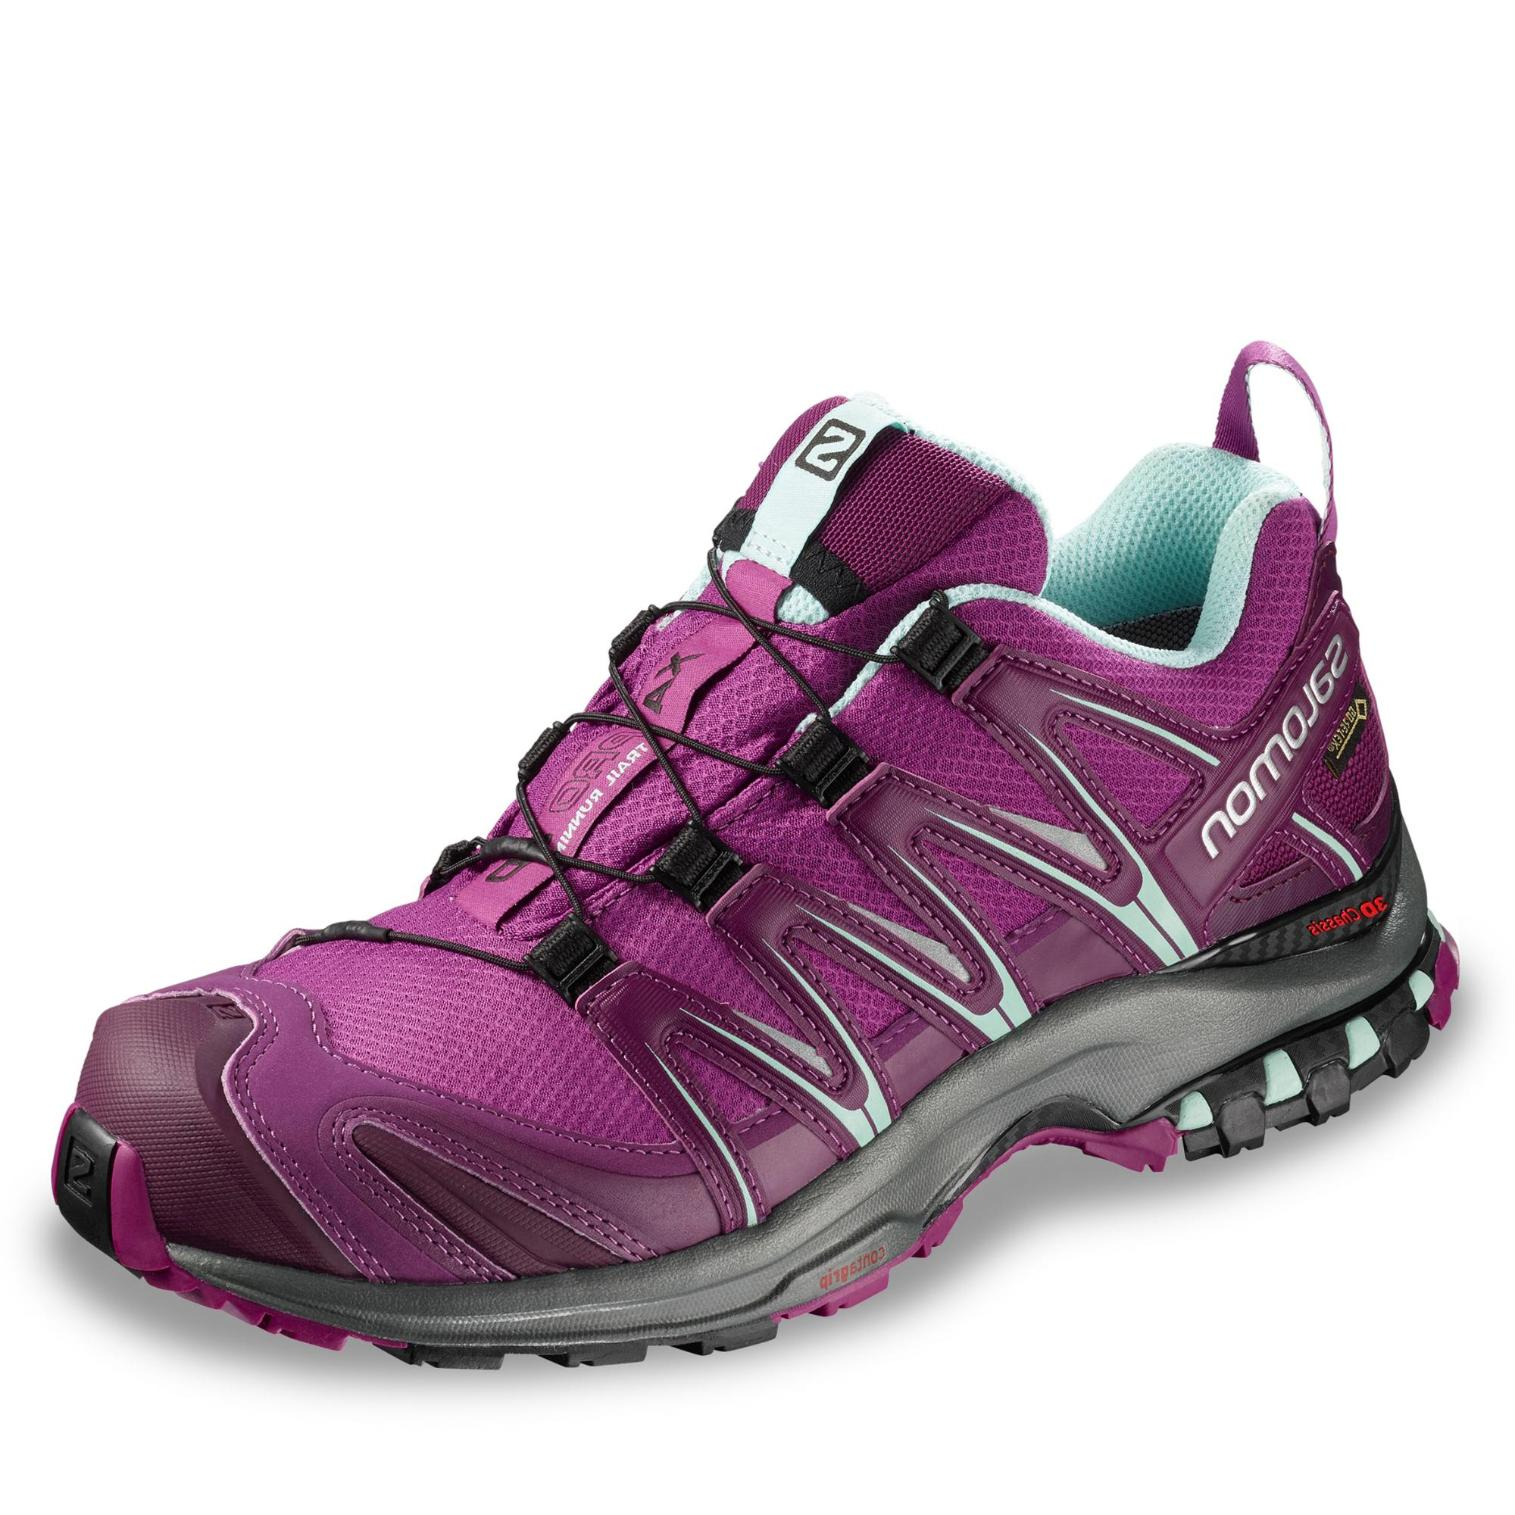 superior quality 6a114 da92f Salomon XA Pro 3D GORE-TEX Outdoorschuh